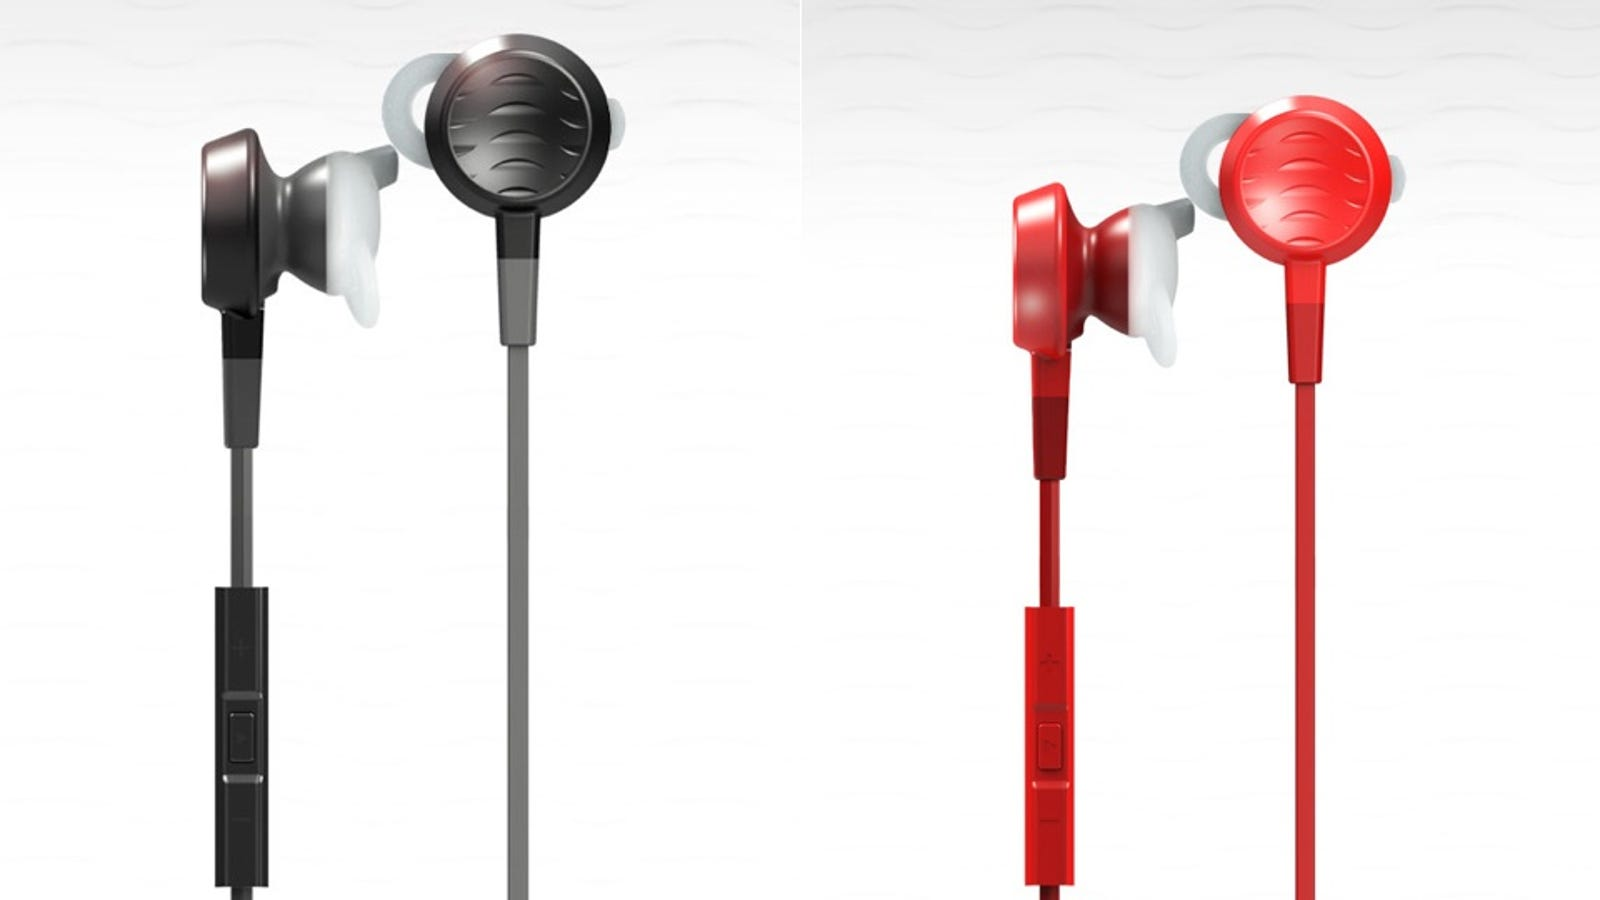 samsung level noise cancelling earbuds - Put a Wang in Your Ear Hole